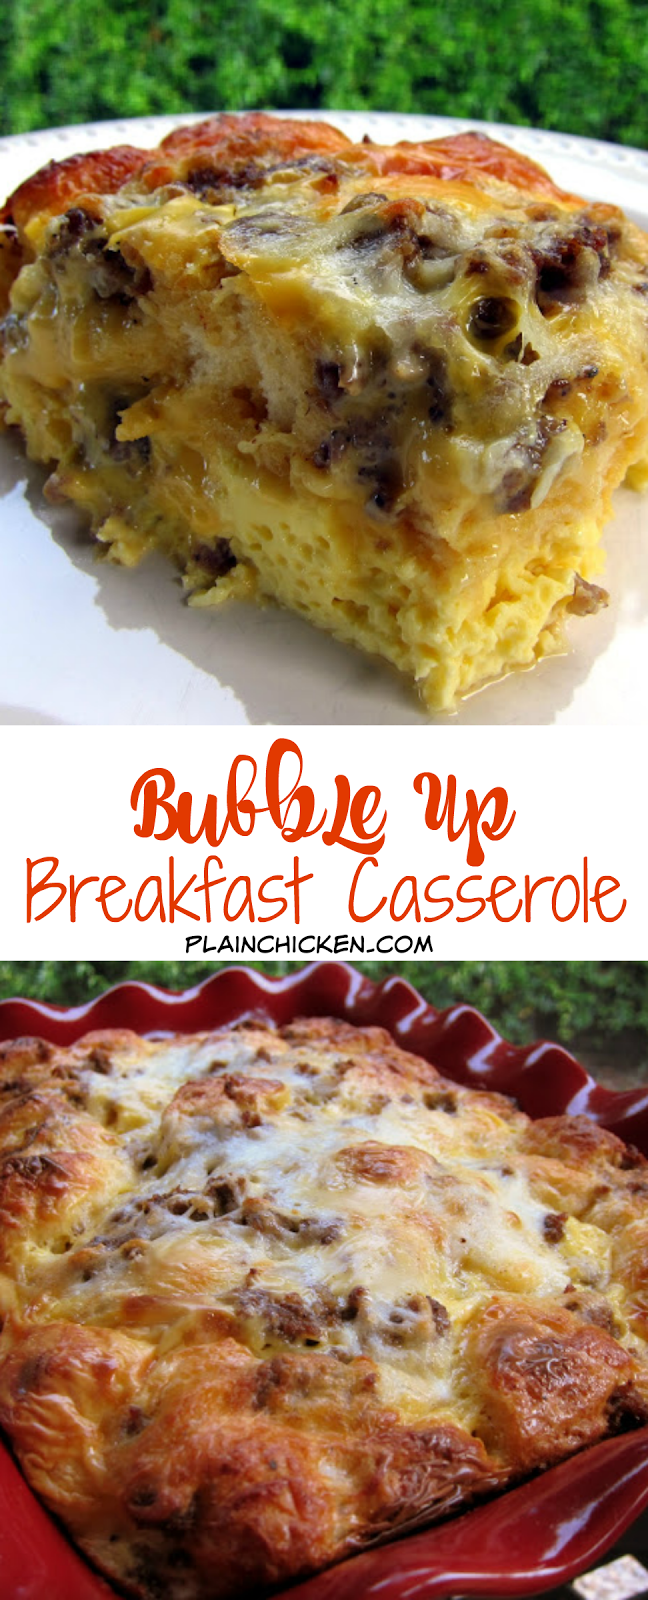 Up Breakfast Casserole - sausage, eggs, cheese and biscuits. SO good! Great for baby showers, overnight guest and the holidays. Only takes minutes to make. Quick and easy breakfast recipe!